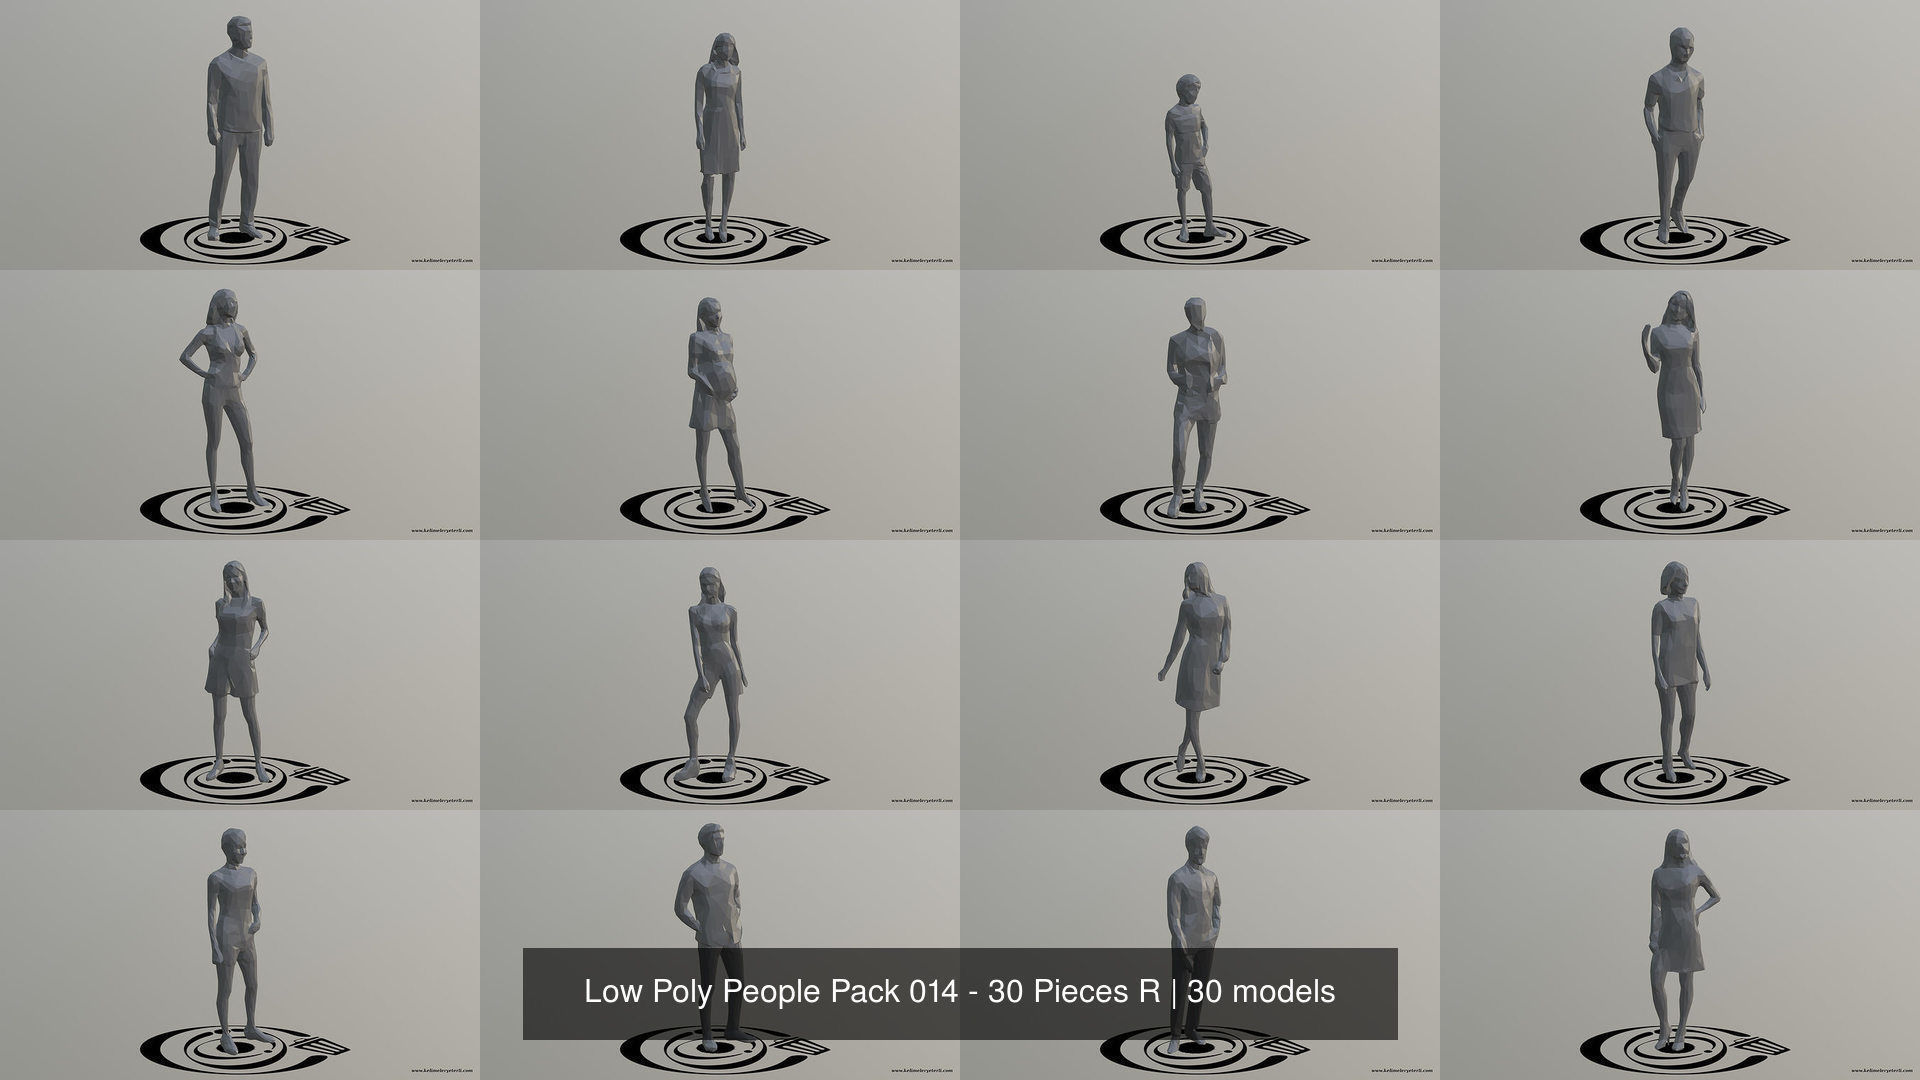 Low Poly People Pack 014 - 30 Pieces R